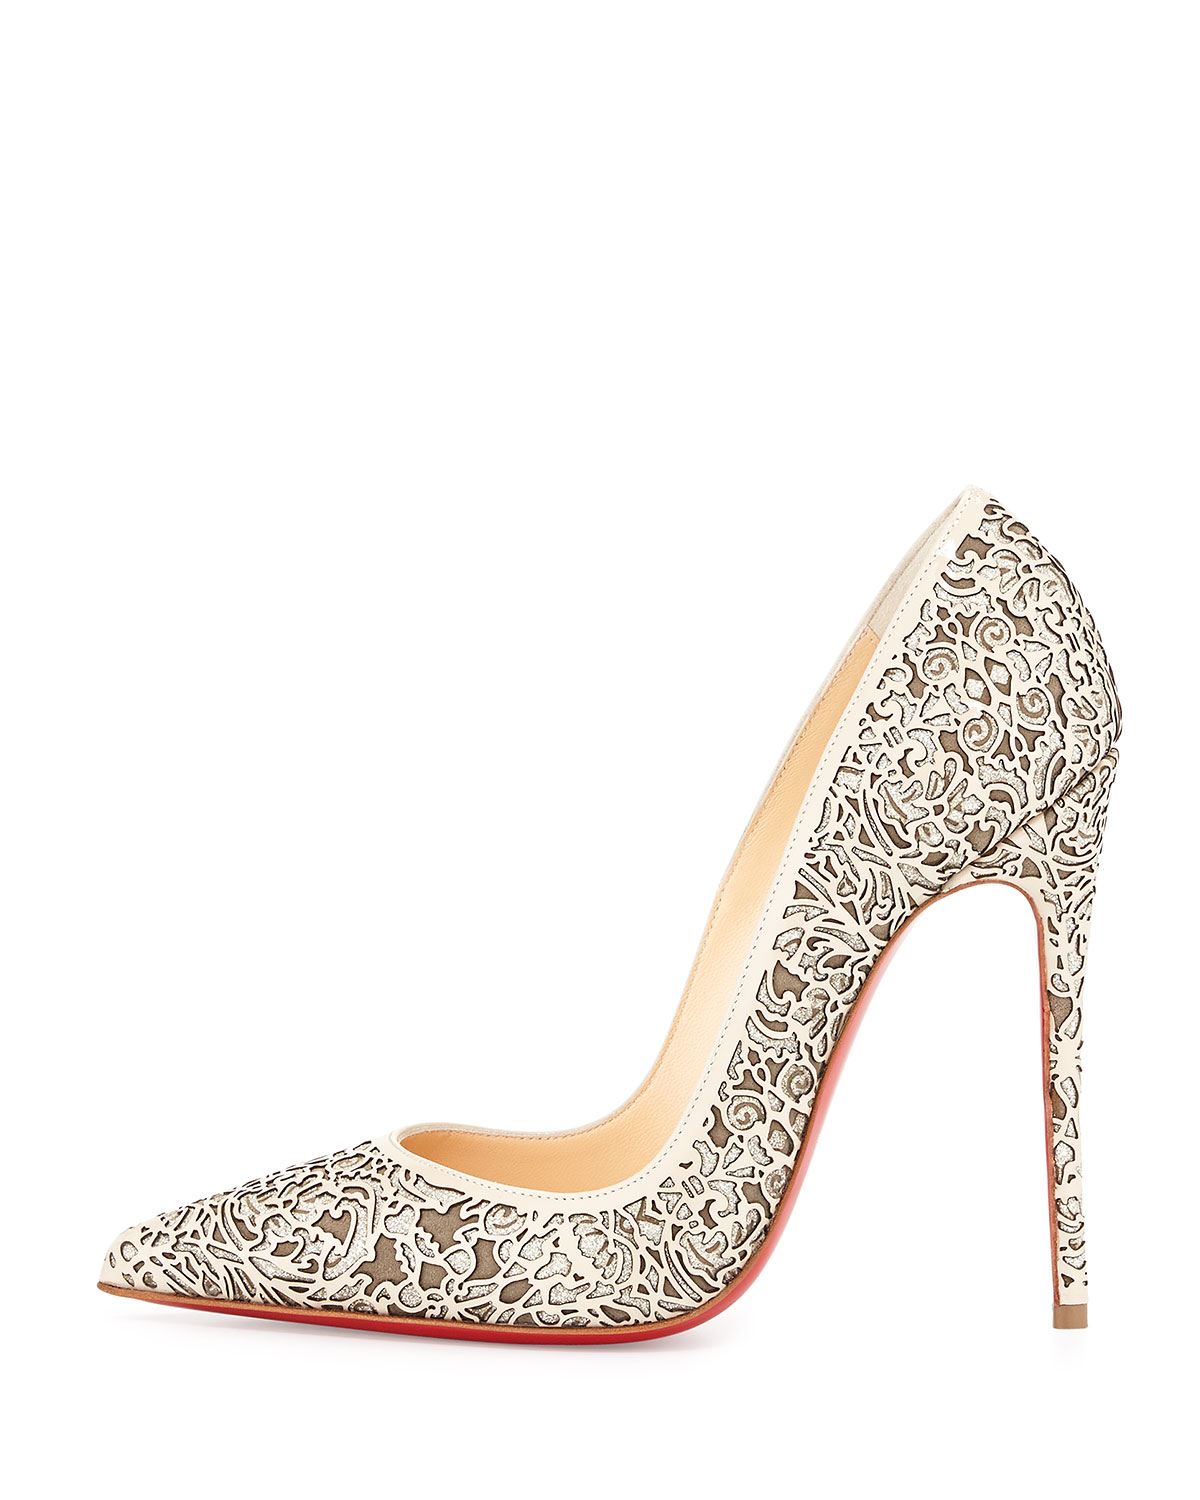 6abe6ff94e Christian Louboutin Bianca Patent 120mm Leather Pumps – approx. R12,000